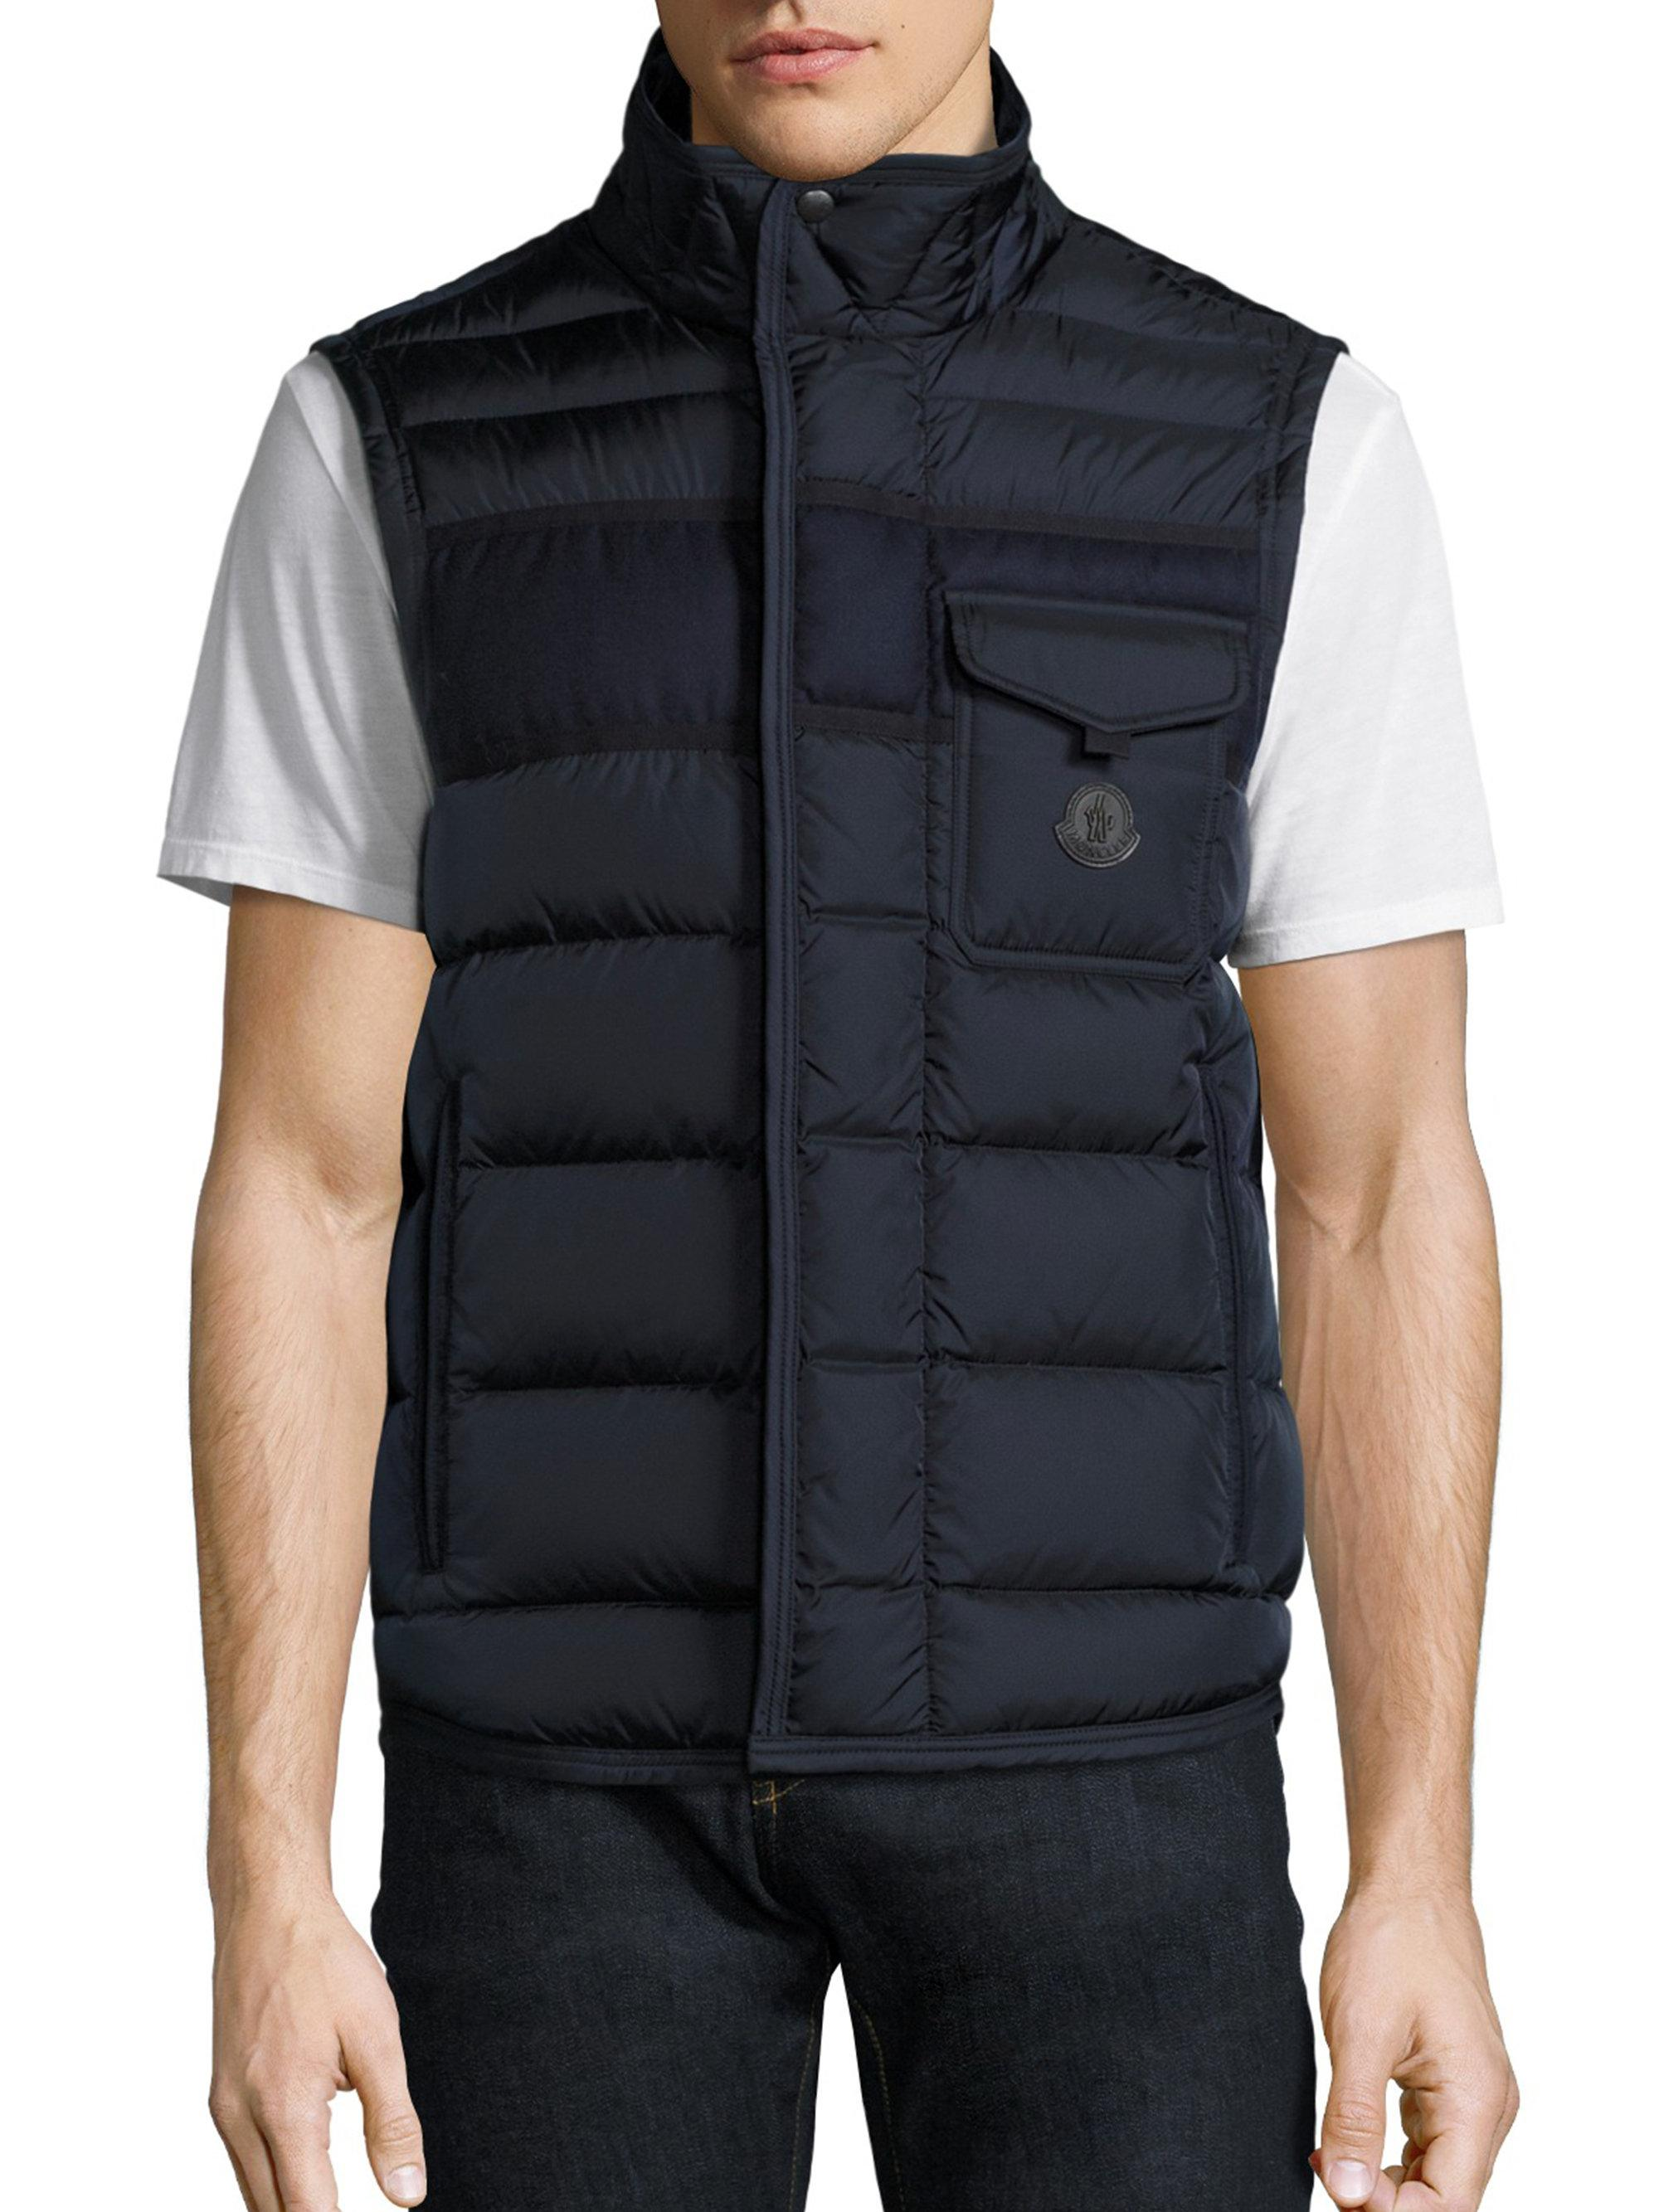 27bfee637547 low cost moncler acorus vest twitter 4bba7 0ccd0